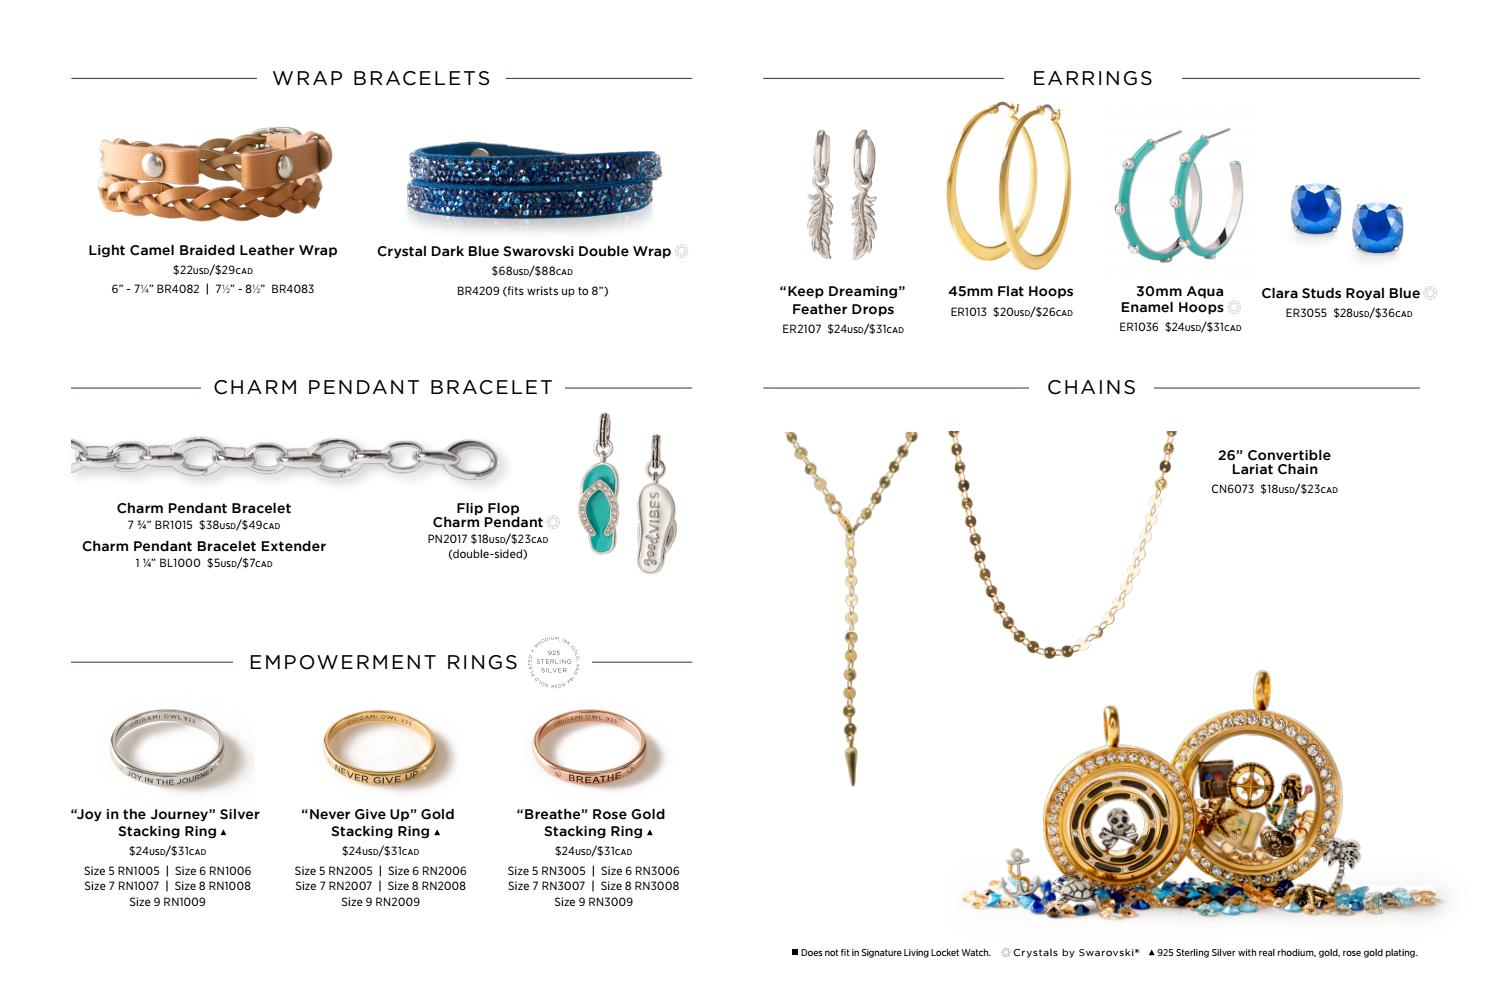 What is Origami Owl Jewelry Made of? | Features & Benefits ... | 994x1491